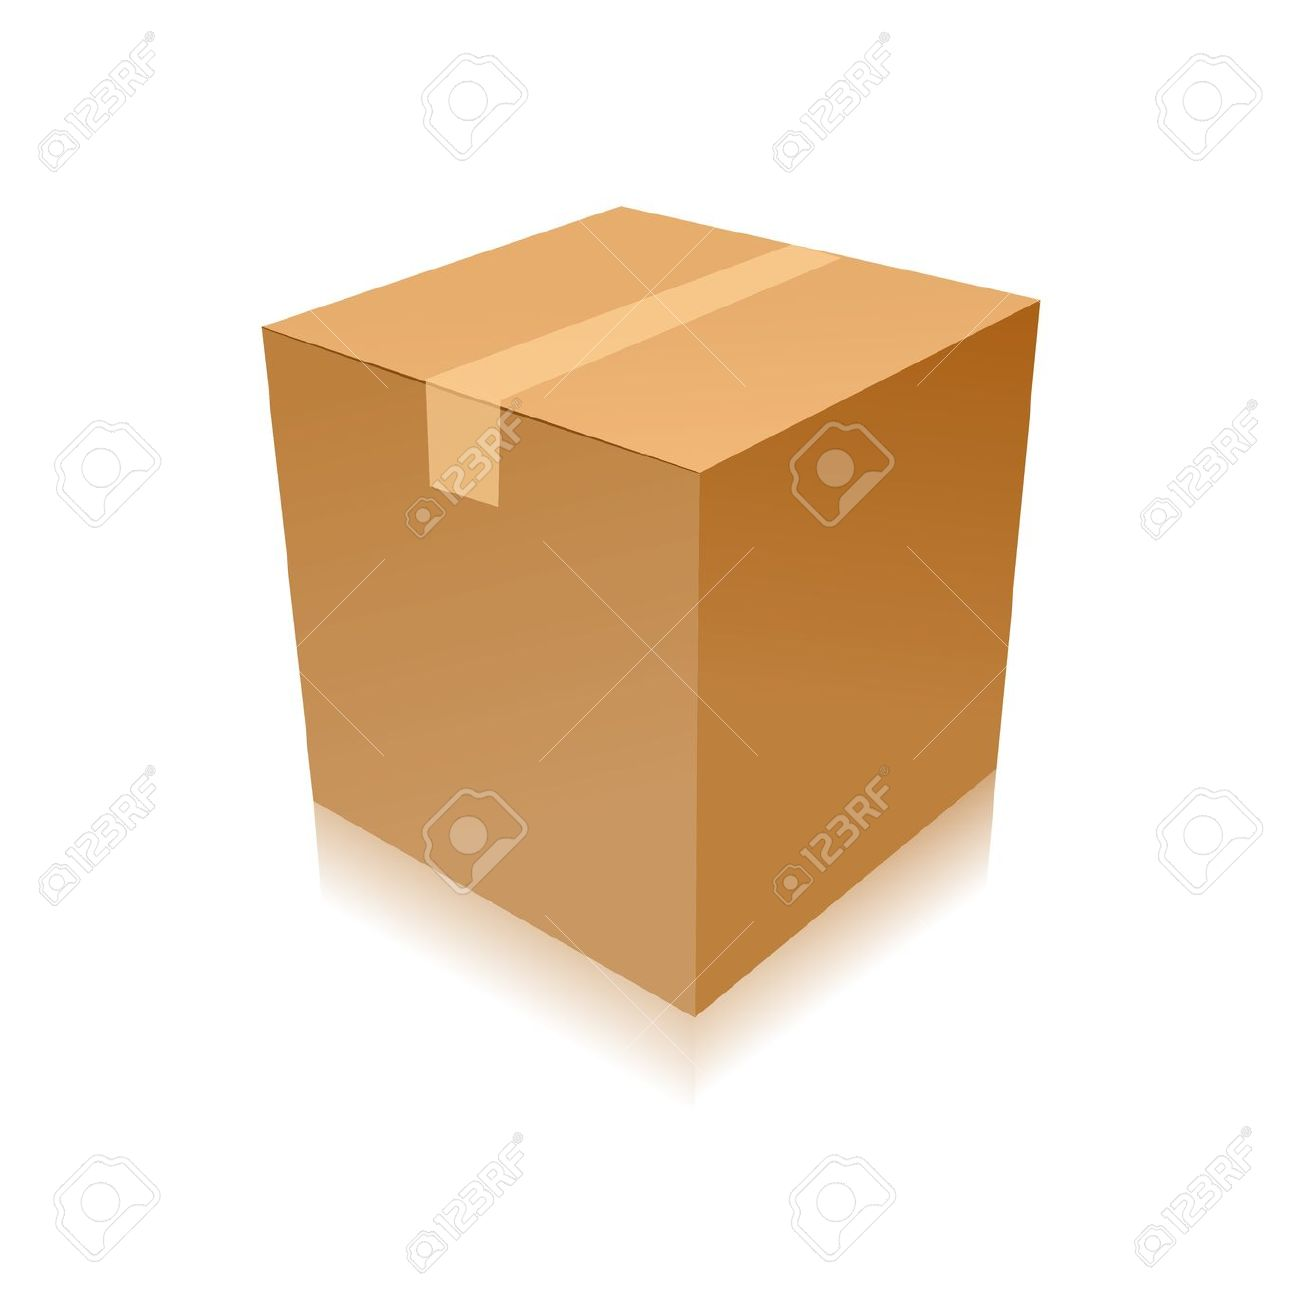 Parcel clipart cardboard box Box Parcel Download Delivery Delivery